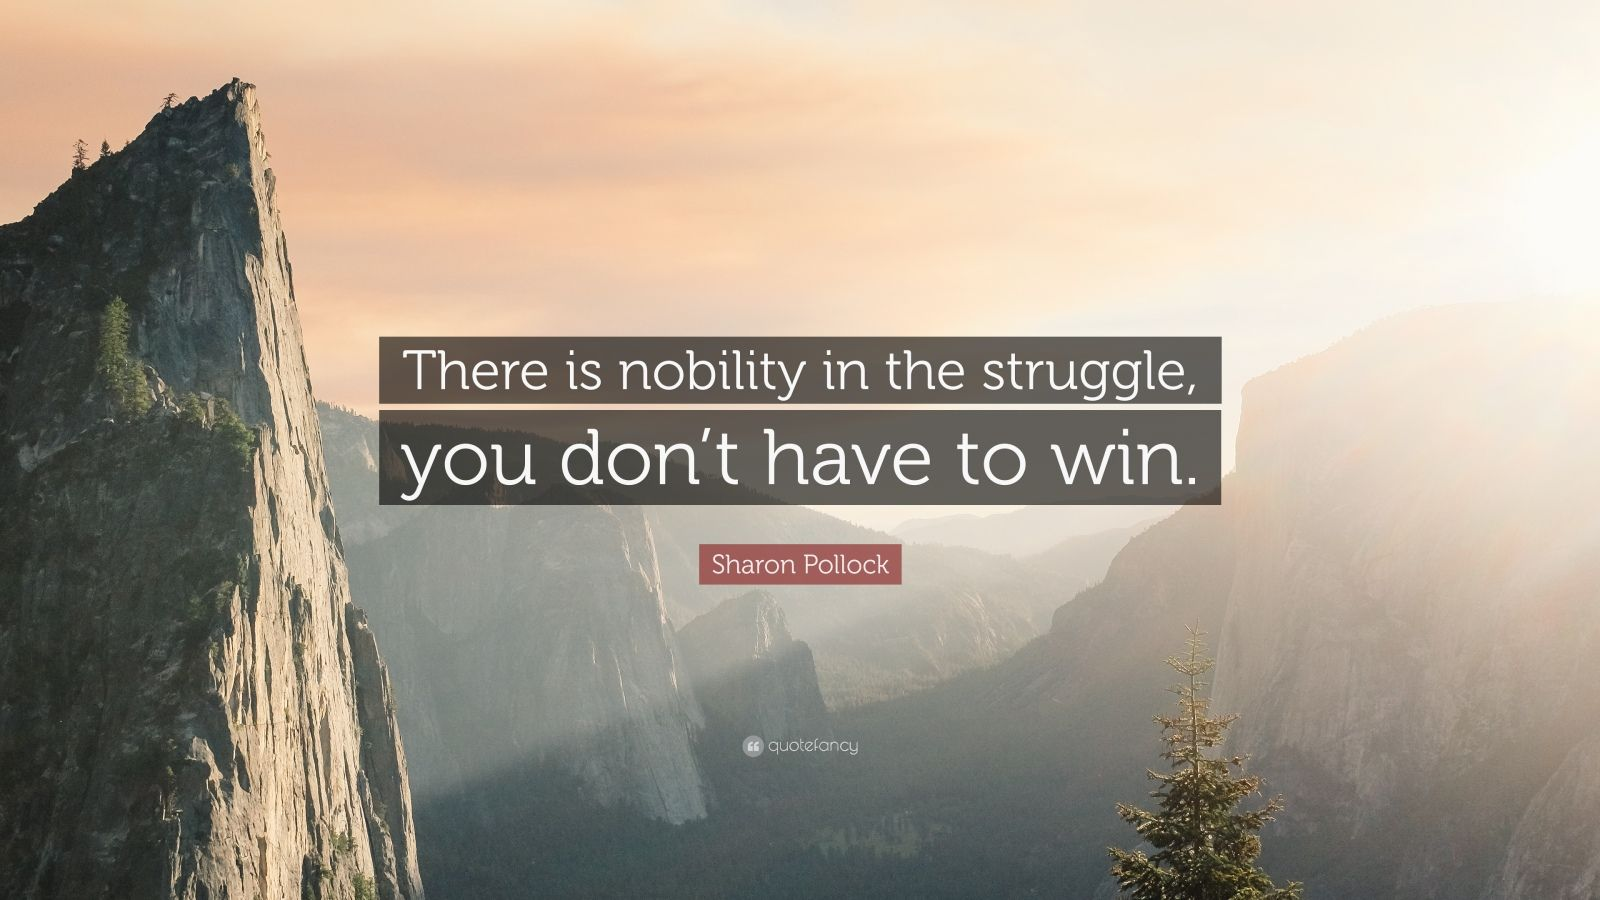 355069-Sharon-Pollock-Quote-There-is-nobility-in-the-struggle-you-don-t.jpg